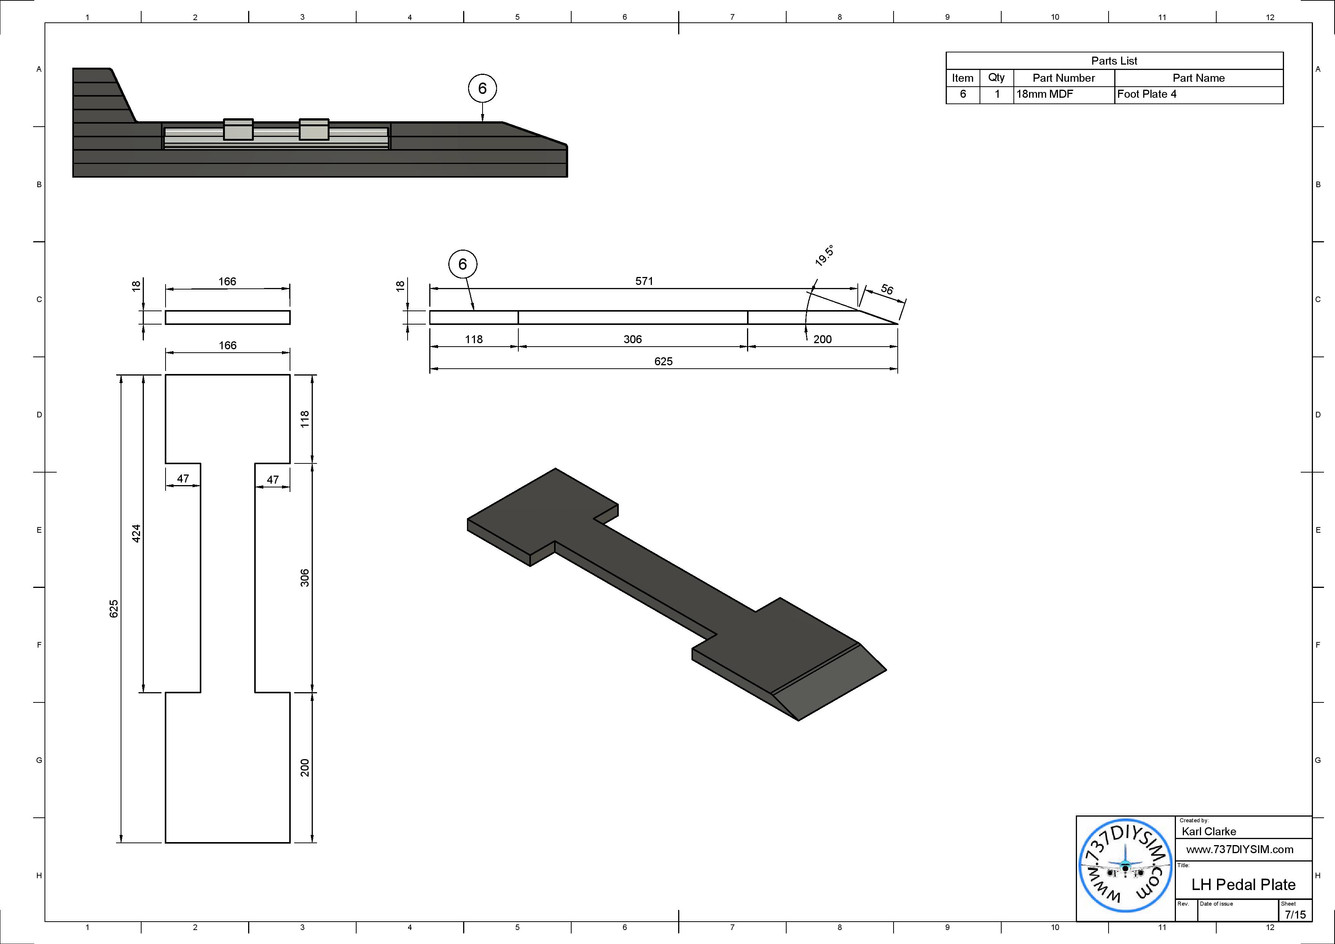 LH Pedal Plate Drawing v1-page-007.jpg